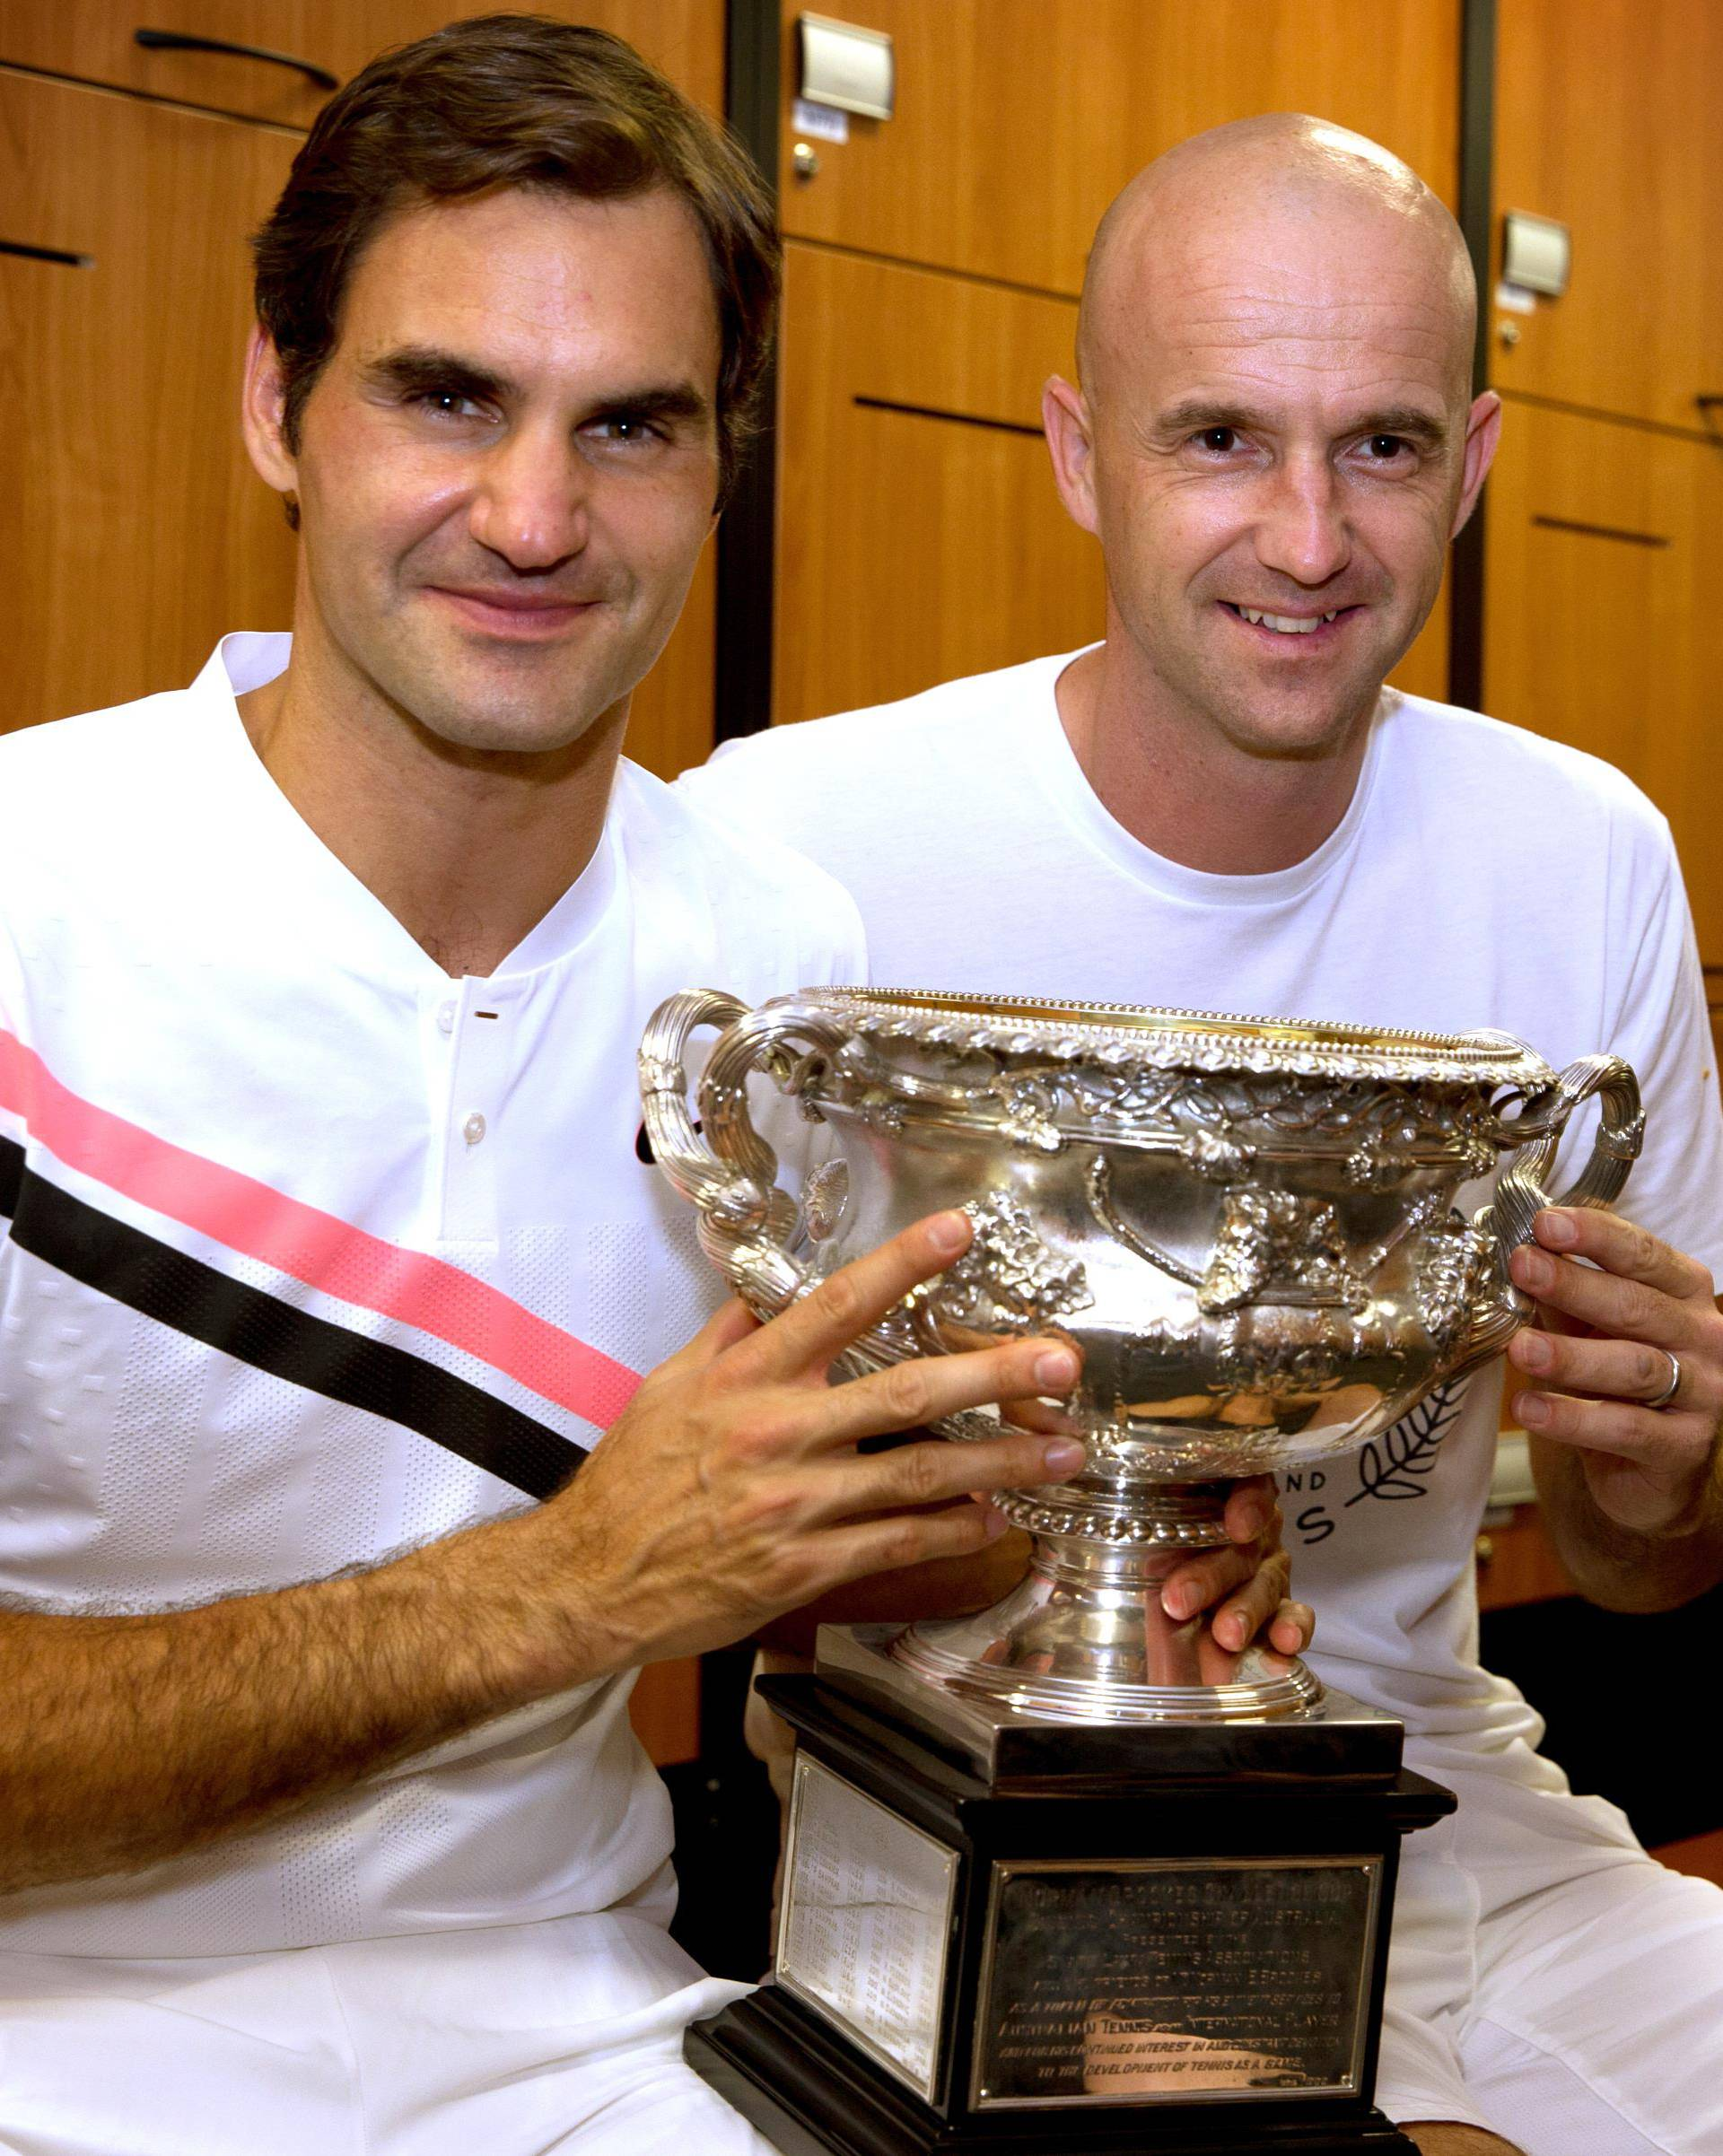 Roger Federer of Switzerland and his coach Ivan Ljubicic pose with the trophy after Federer won the Australian Open tennis tournament men's singles final, in the locker room in Melbourne